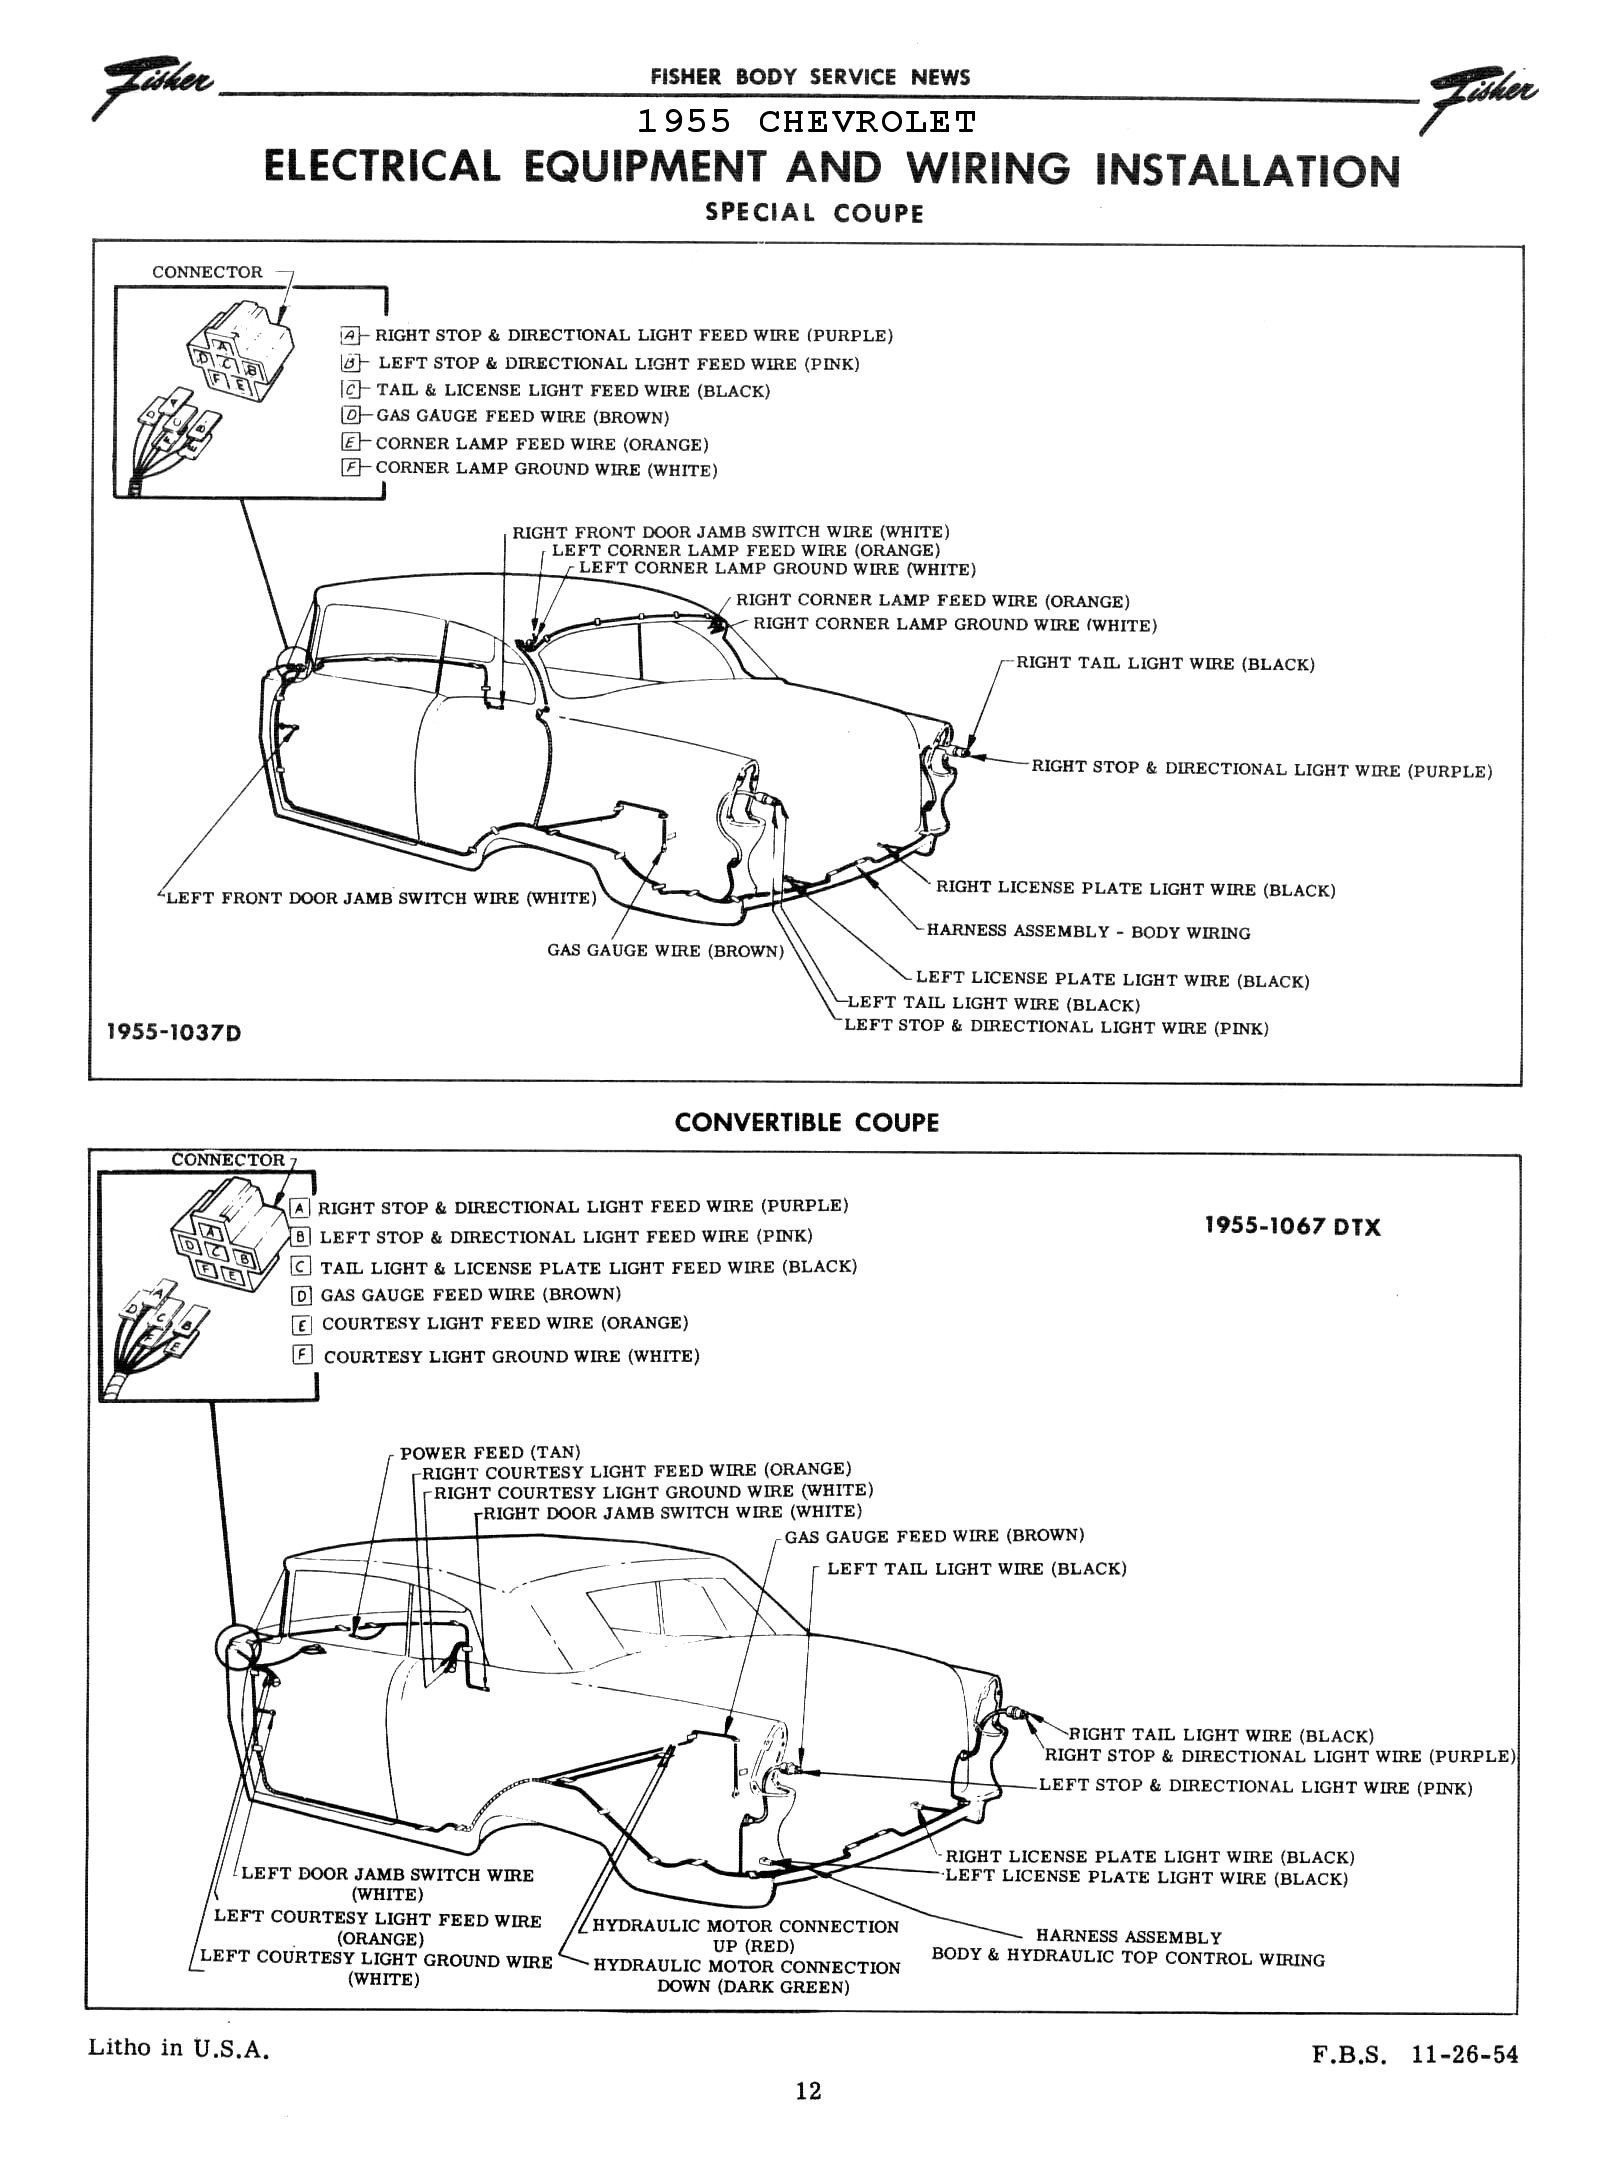 Chevy Wiring Diagrams Sierrra Solenoid Switch Diagram 1955 Body 3